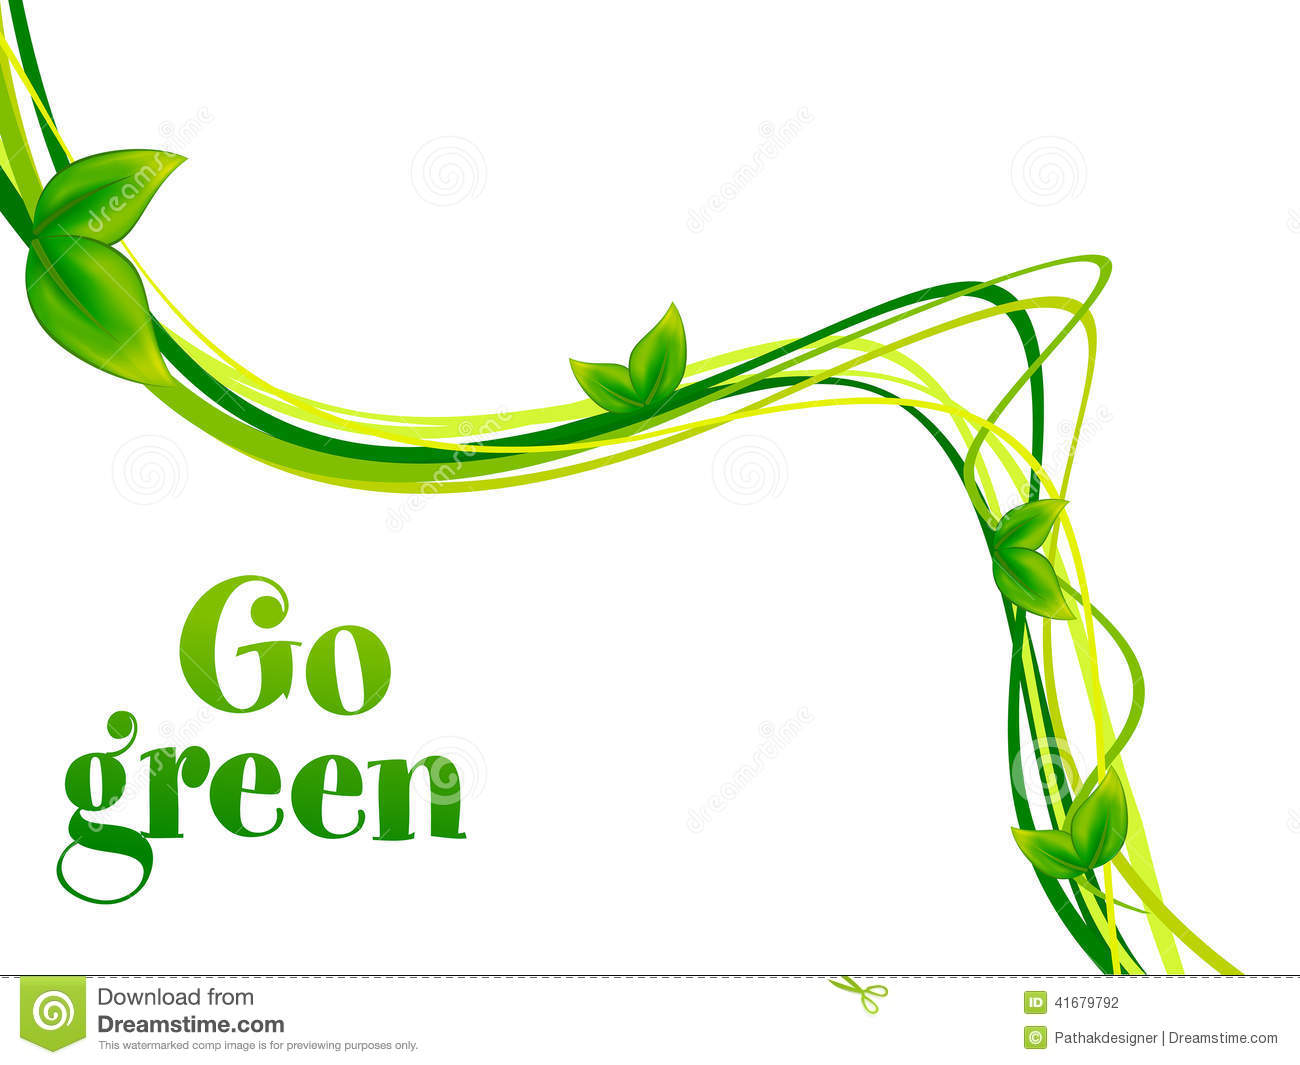 go green clip art pictures - photo #38